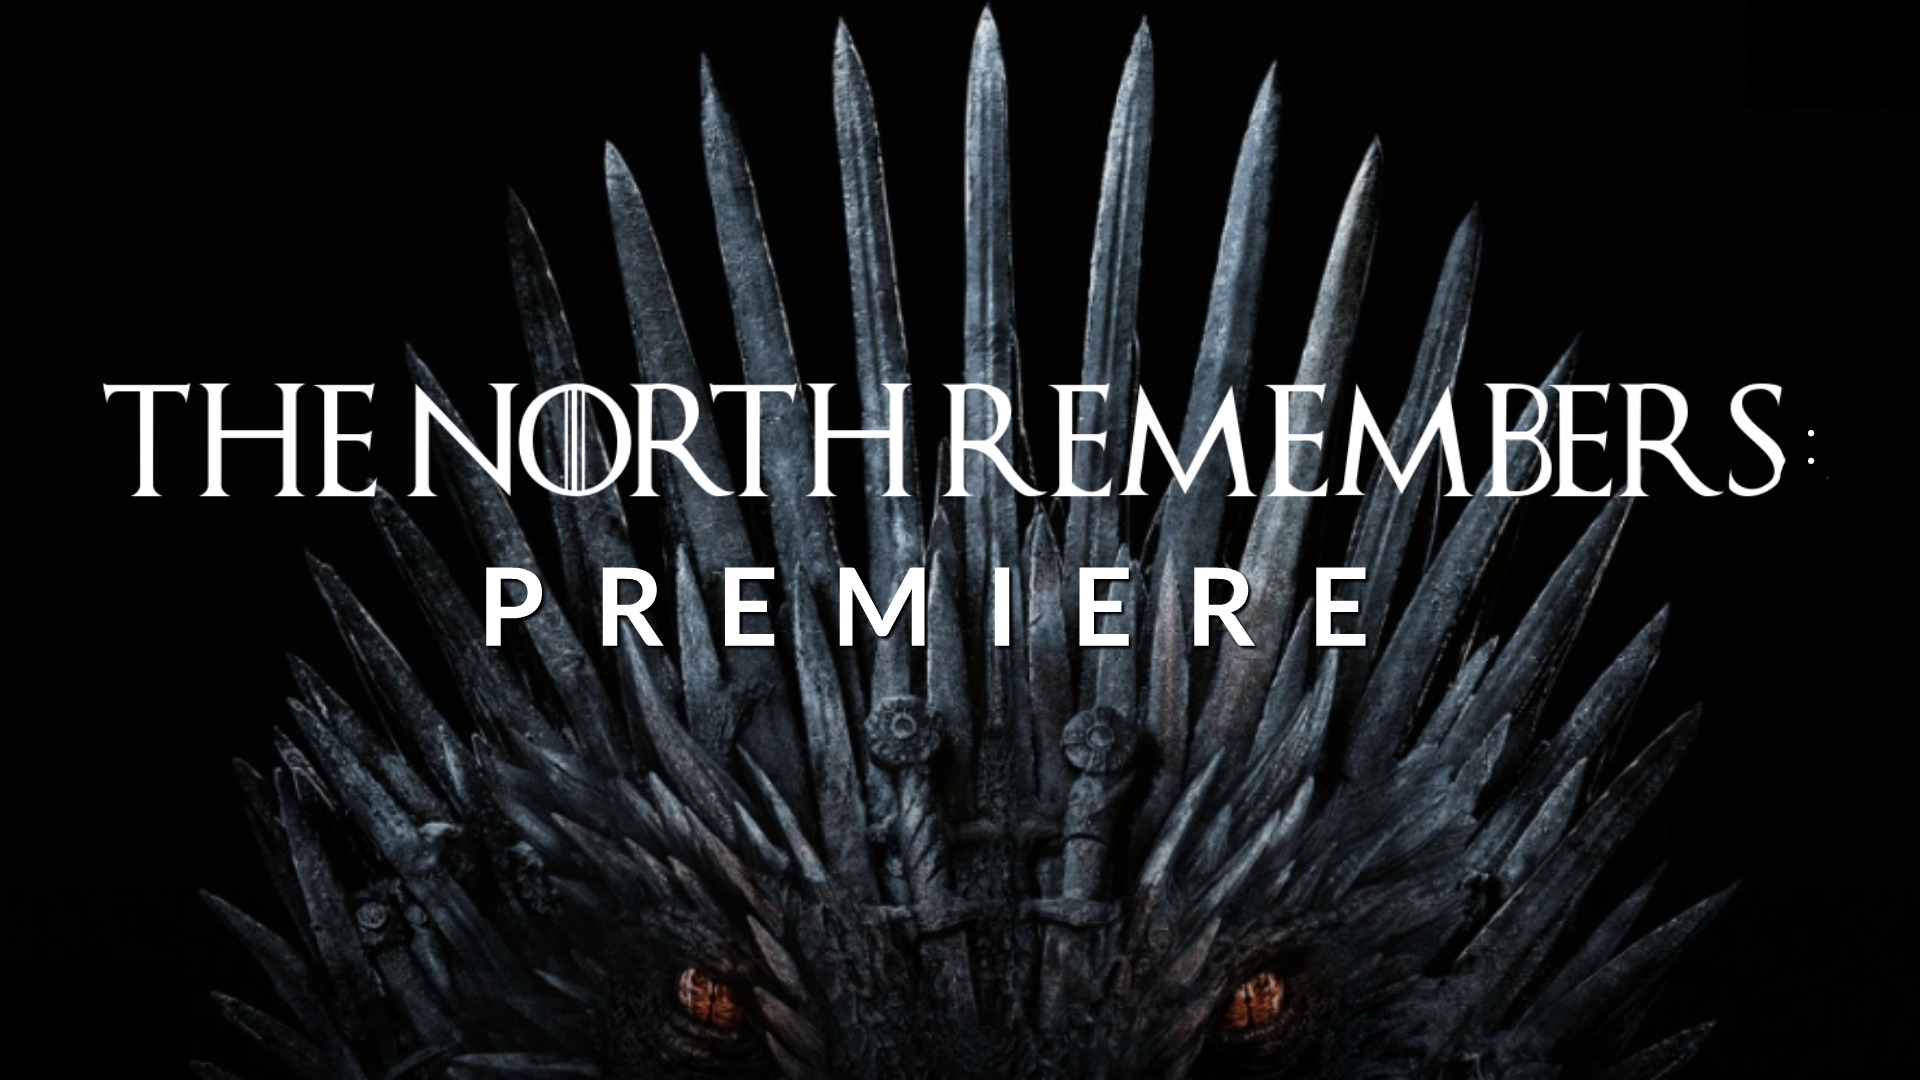 The North Remembers: Premiere